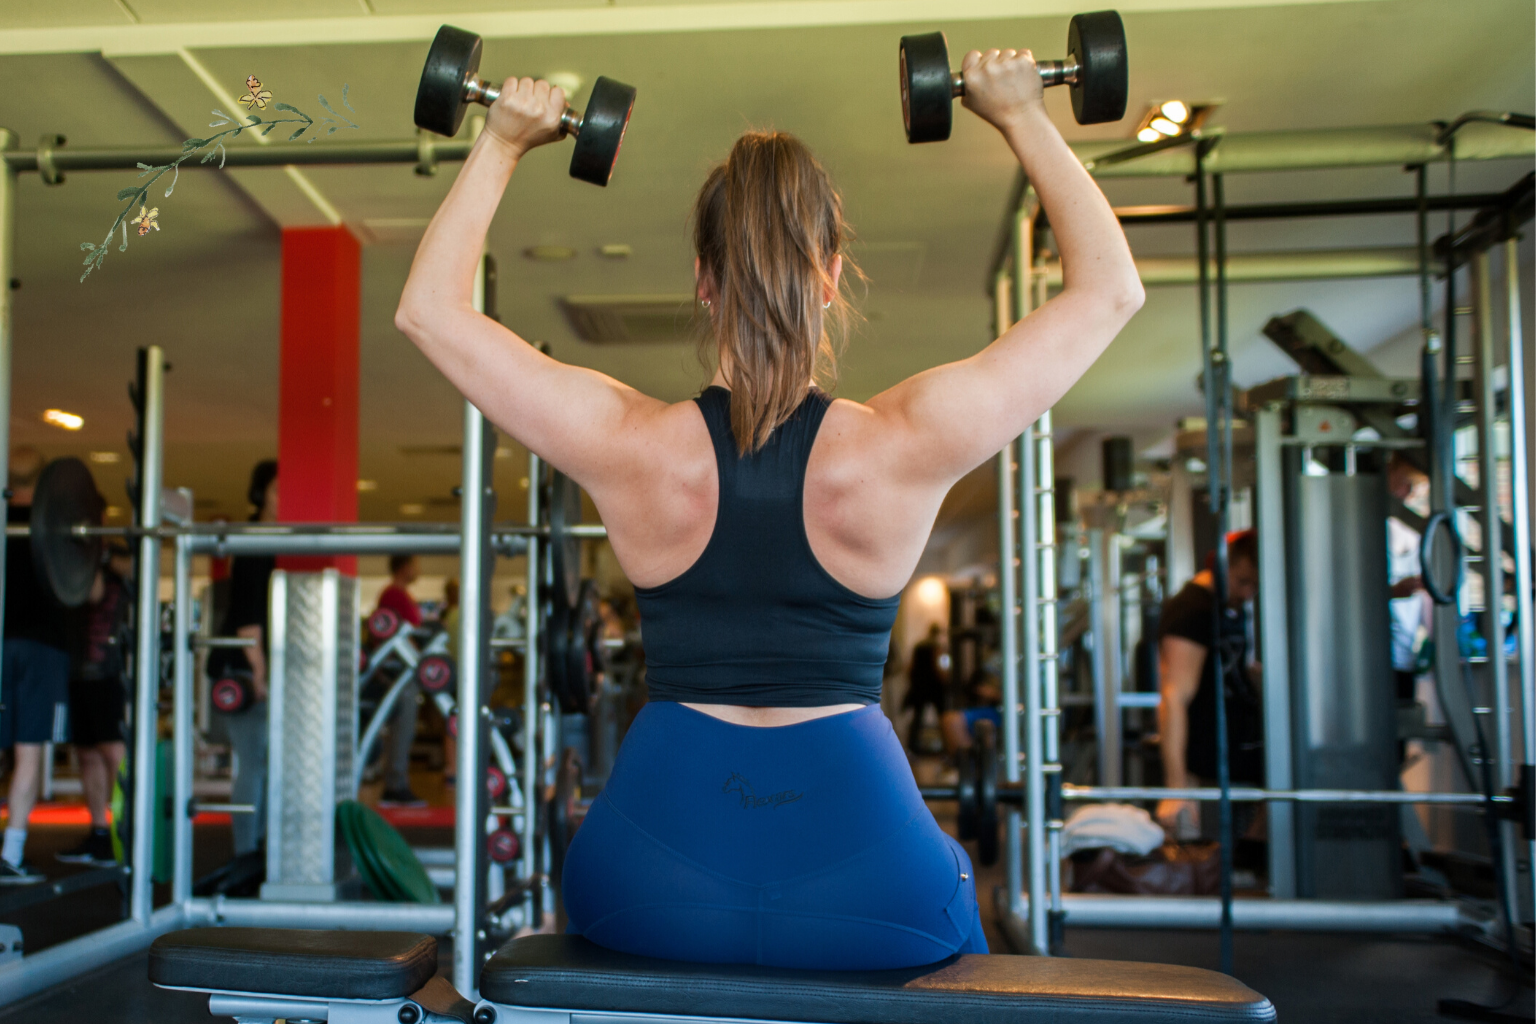 riding leggings in the gym